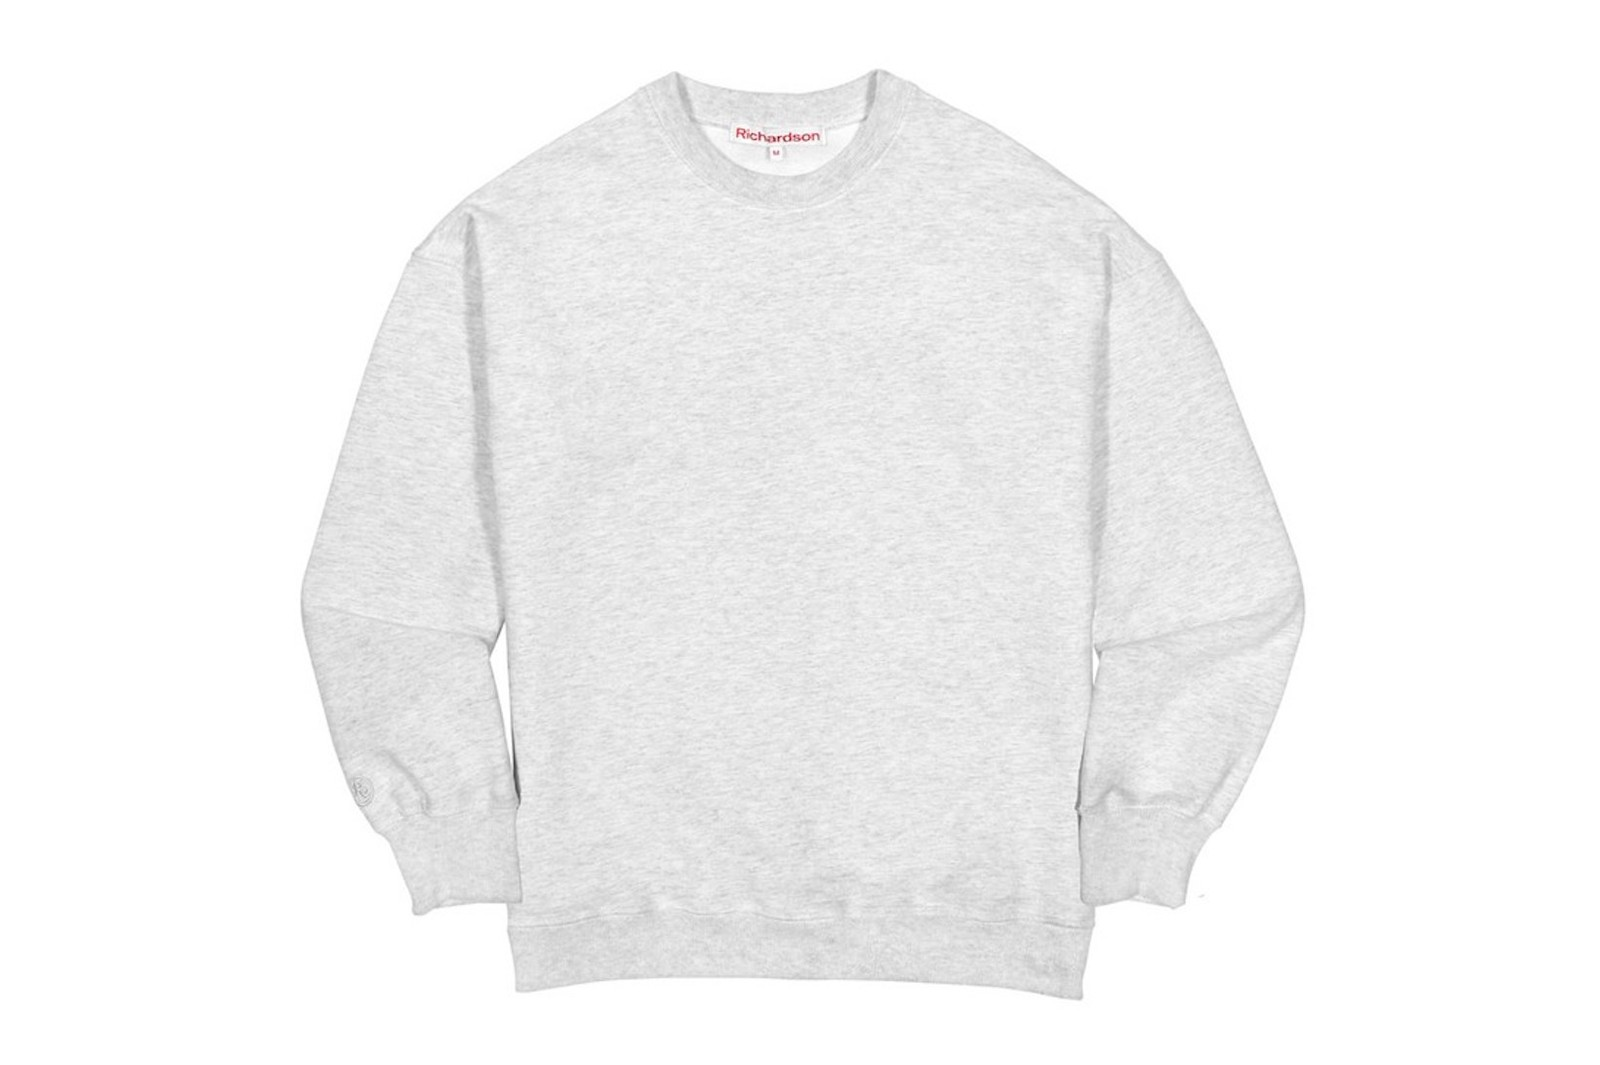 richardson spring summer collection jackets crewneck sweater